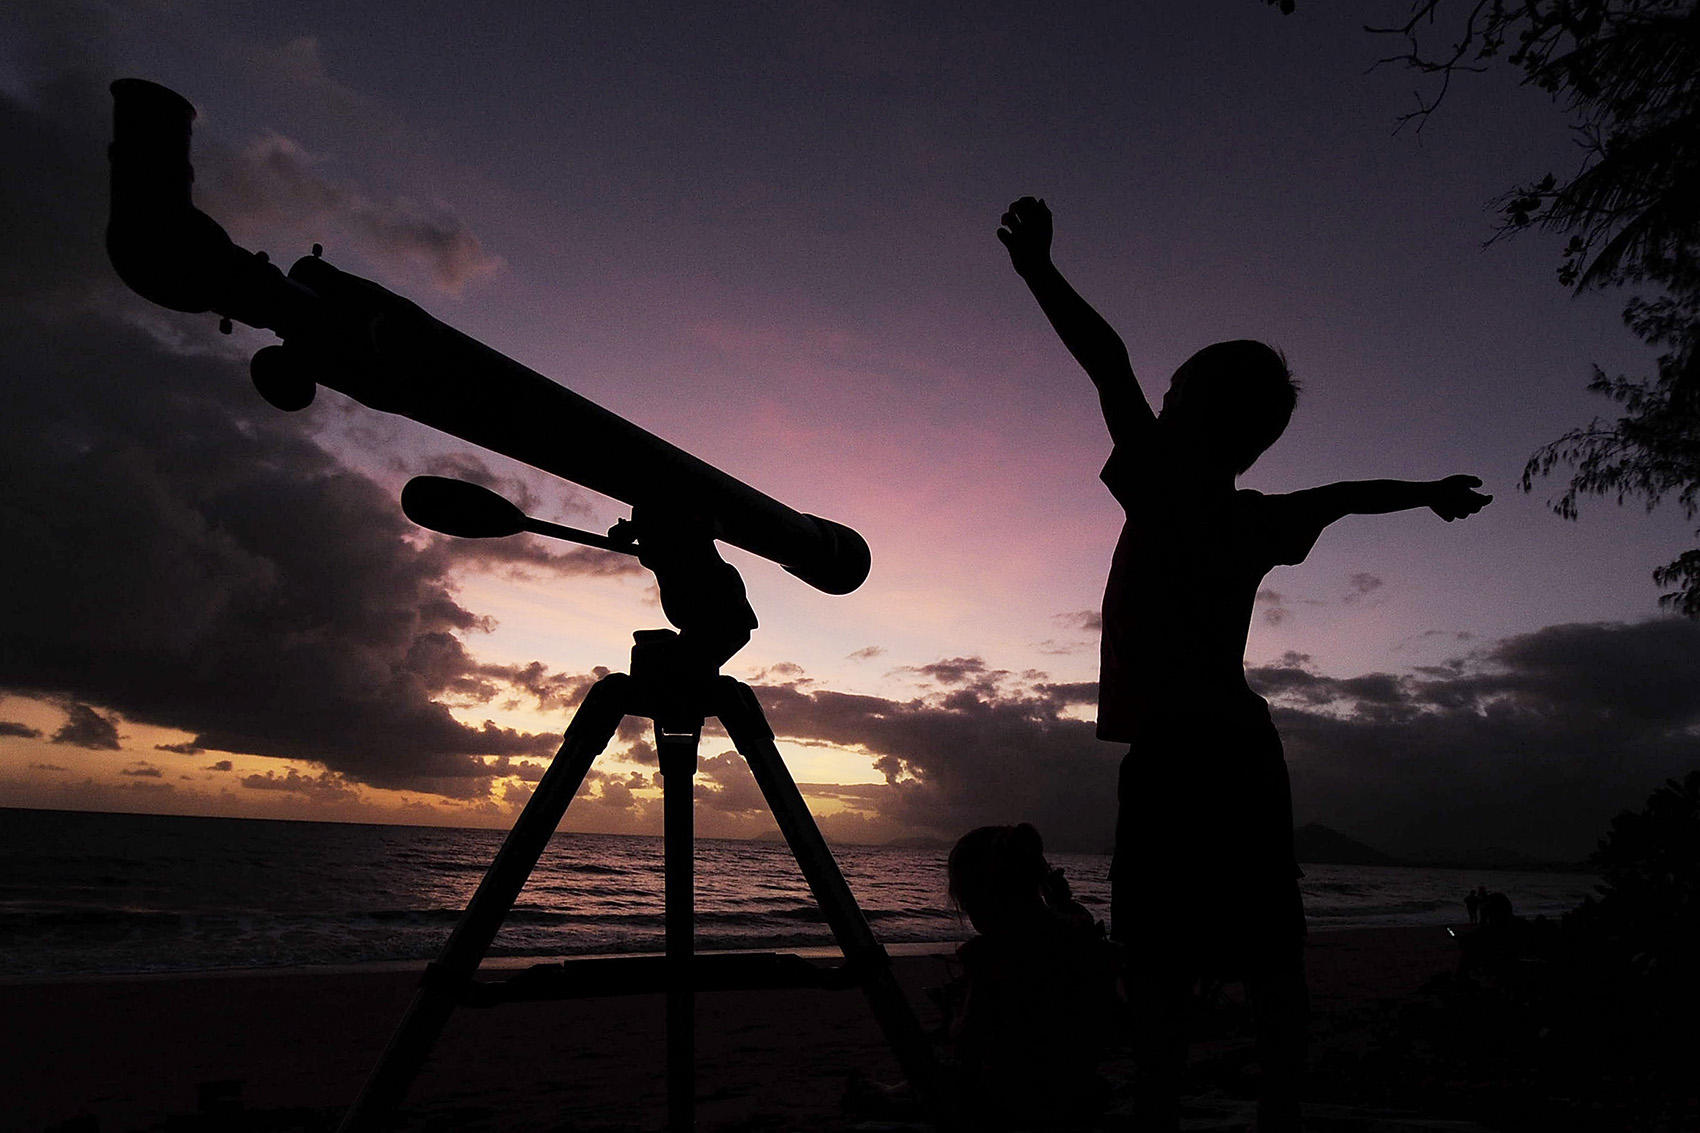 Looking At Earth's Future Through 'The Optimist's Telescope'